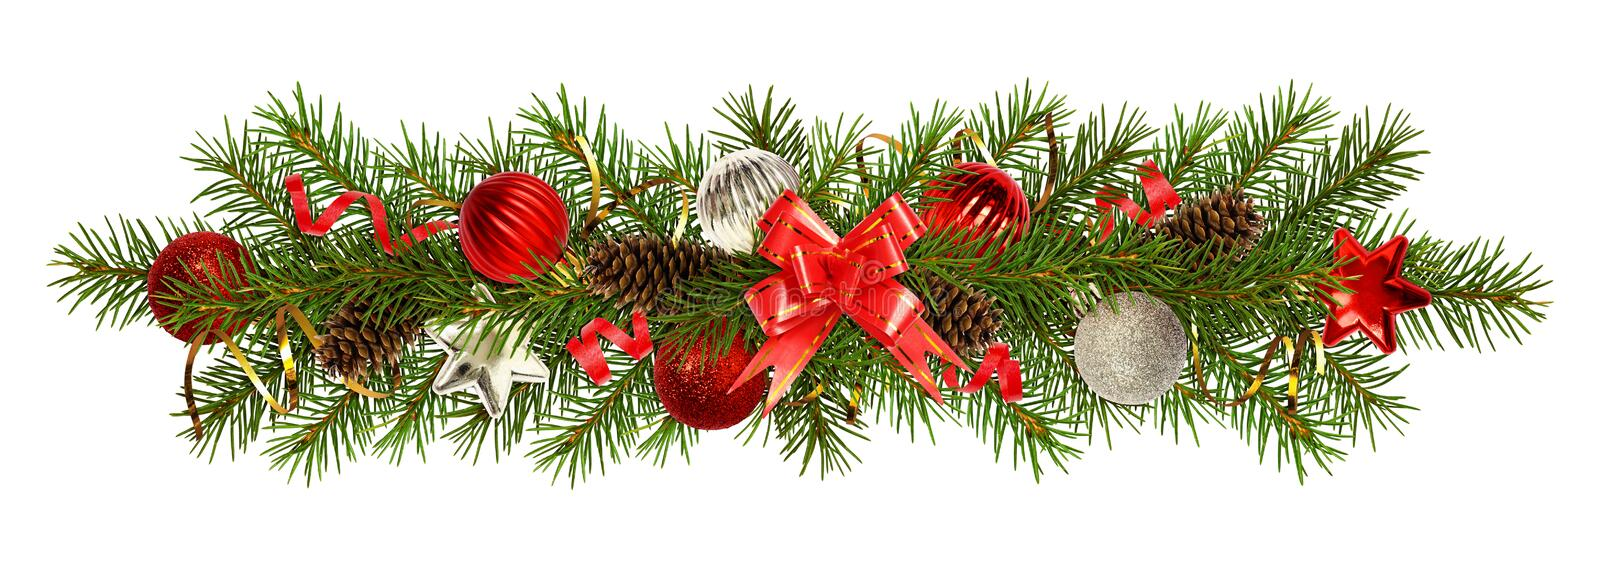 Evergreen twigs of Christmas tree and decorations in a festive royalty free stock photography